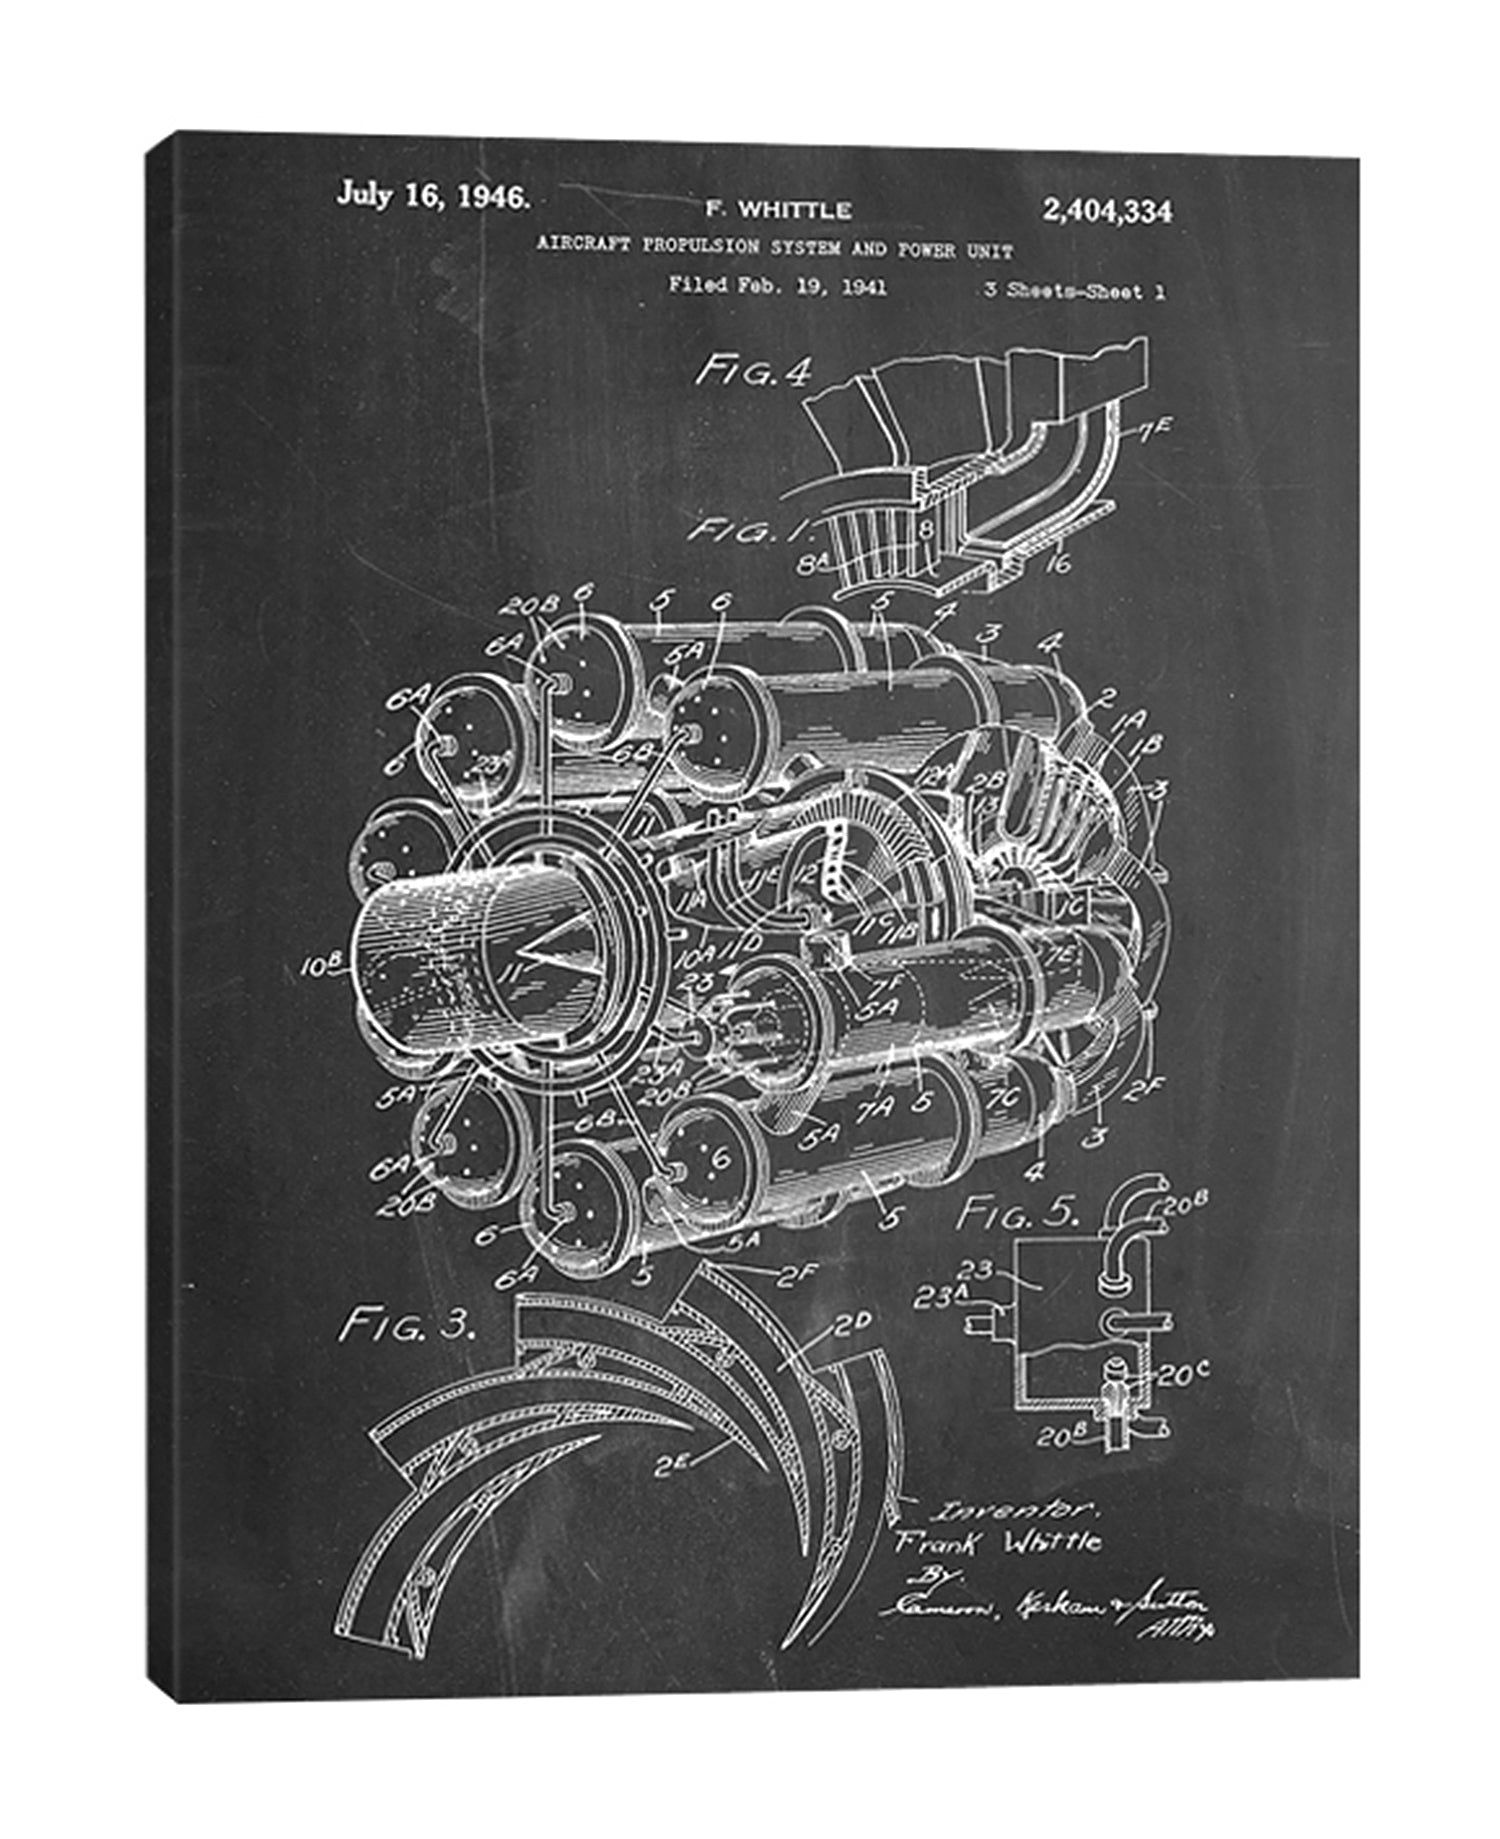 Cole-Borders,Modern & Contemporary,Transportation,jet engine,engines,jets,blueprints,patented,words and phrases,numbers,drawing,sketches,Charcoal Gray,Black,Teal Blue,Gray,White